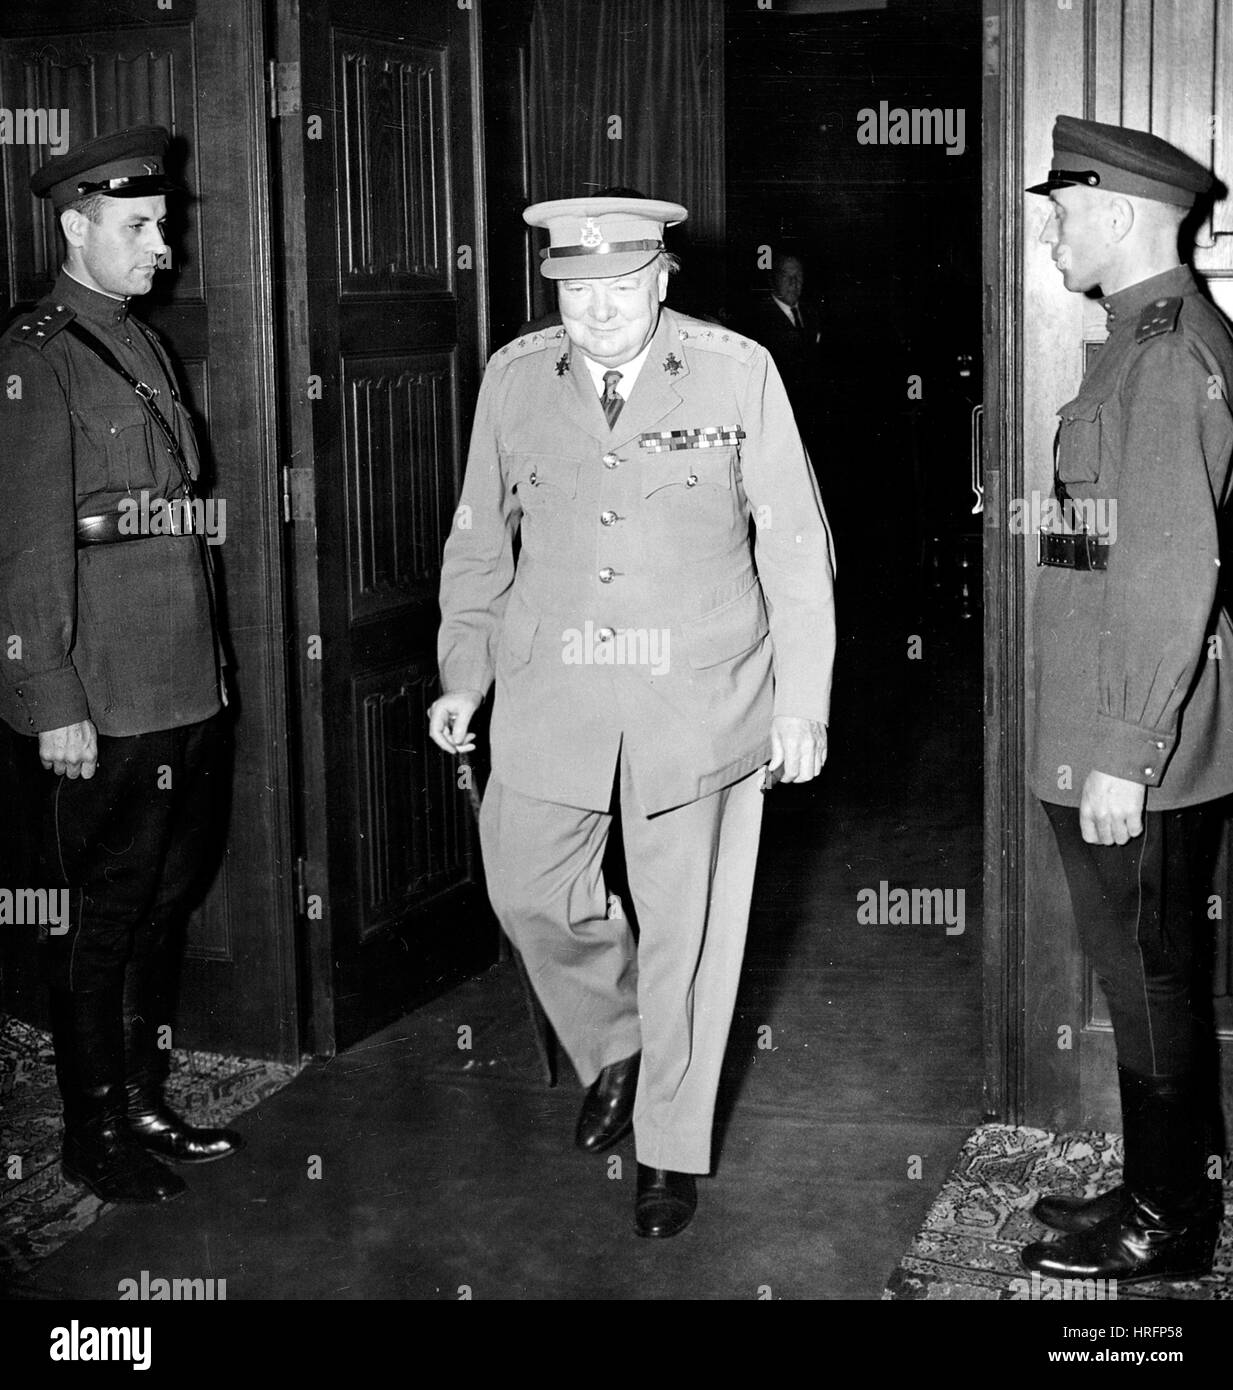 POTSDAM CONFERENCE 1945  Winston Churchill with two Russian guards - Stock Image